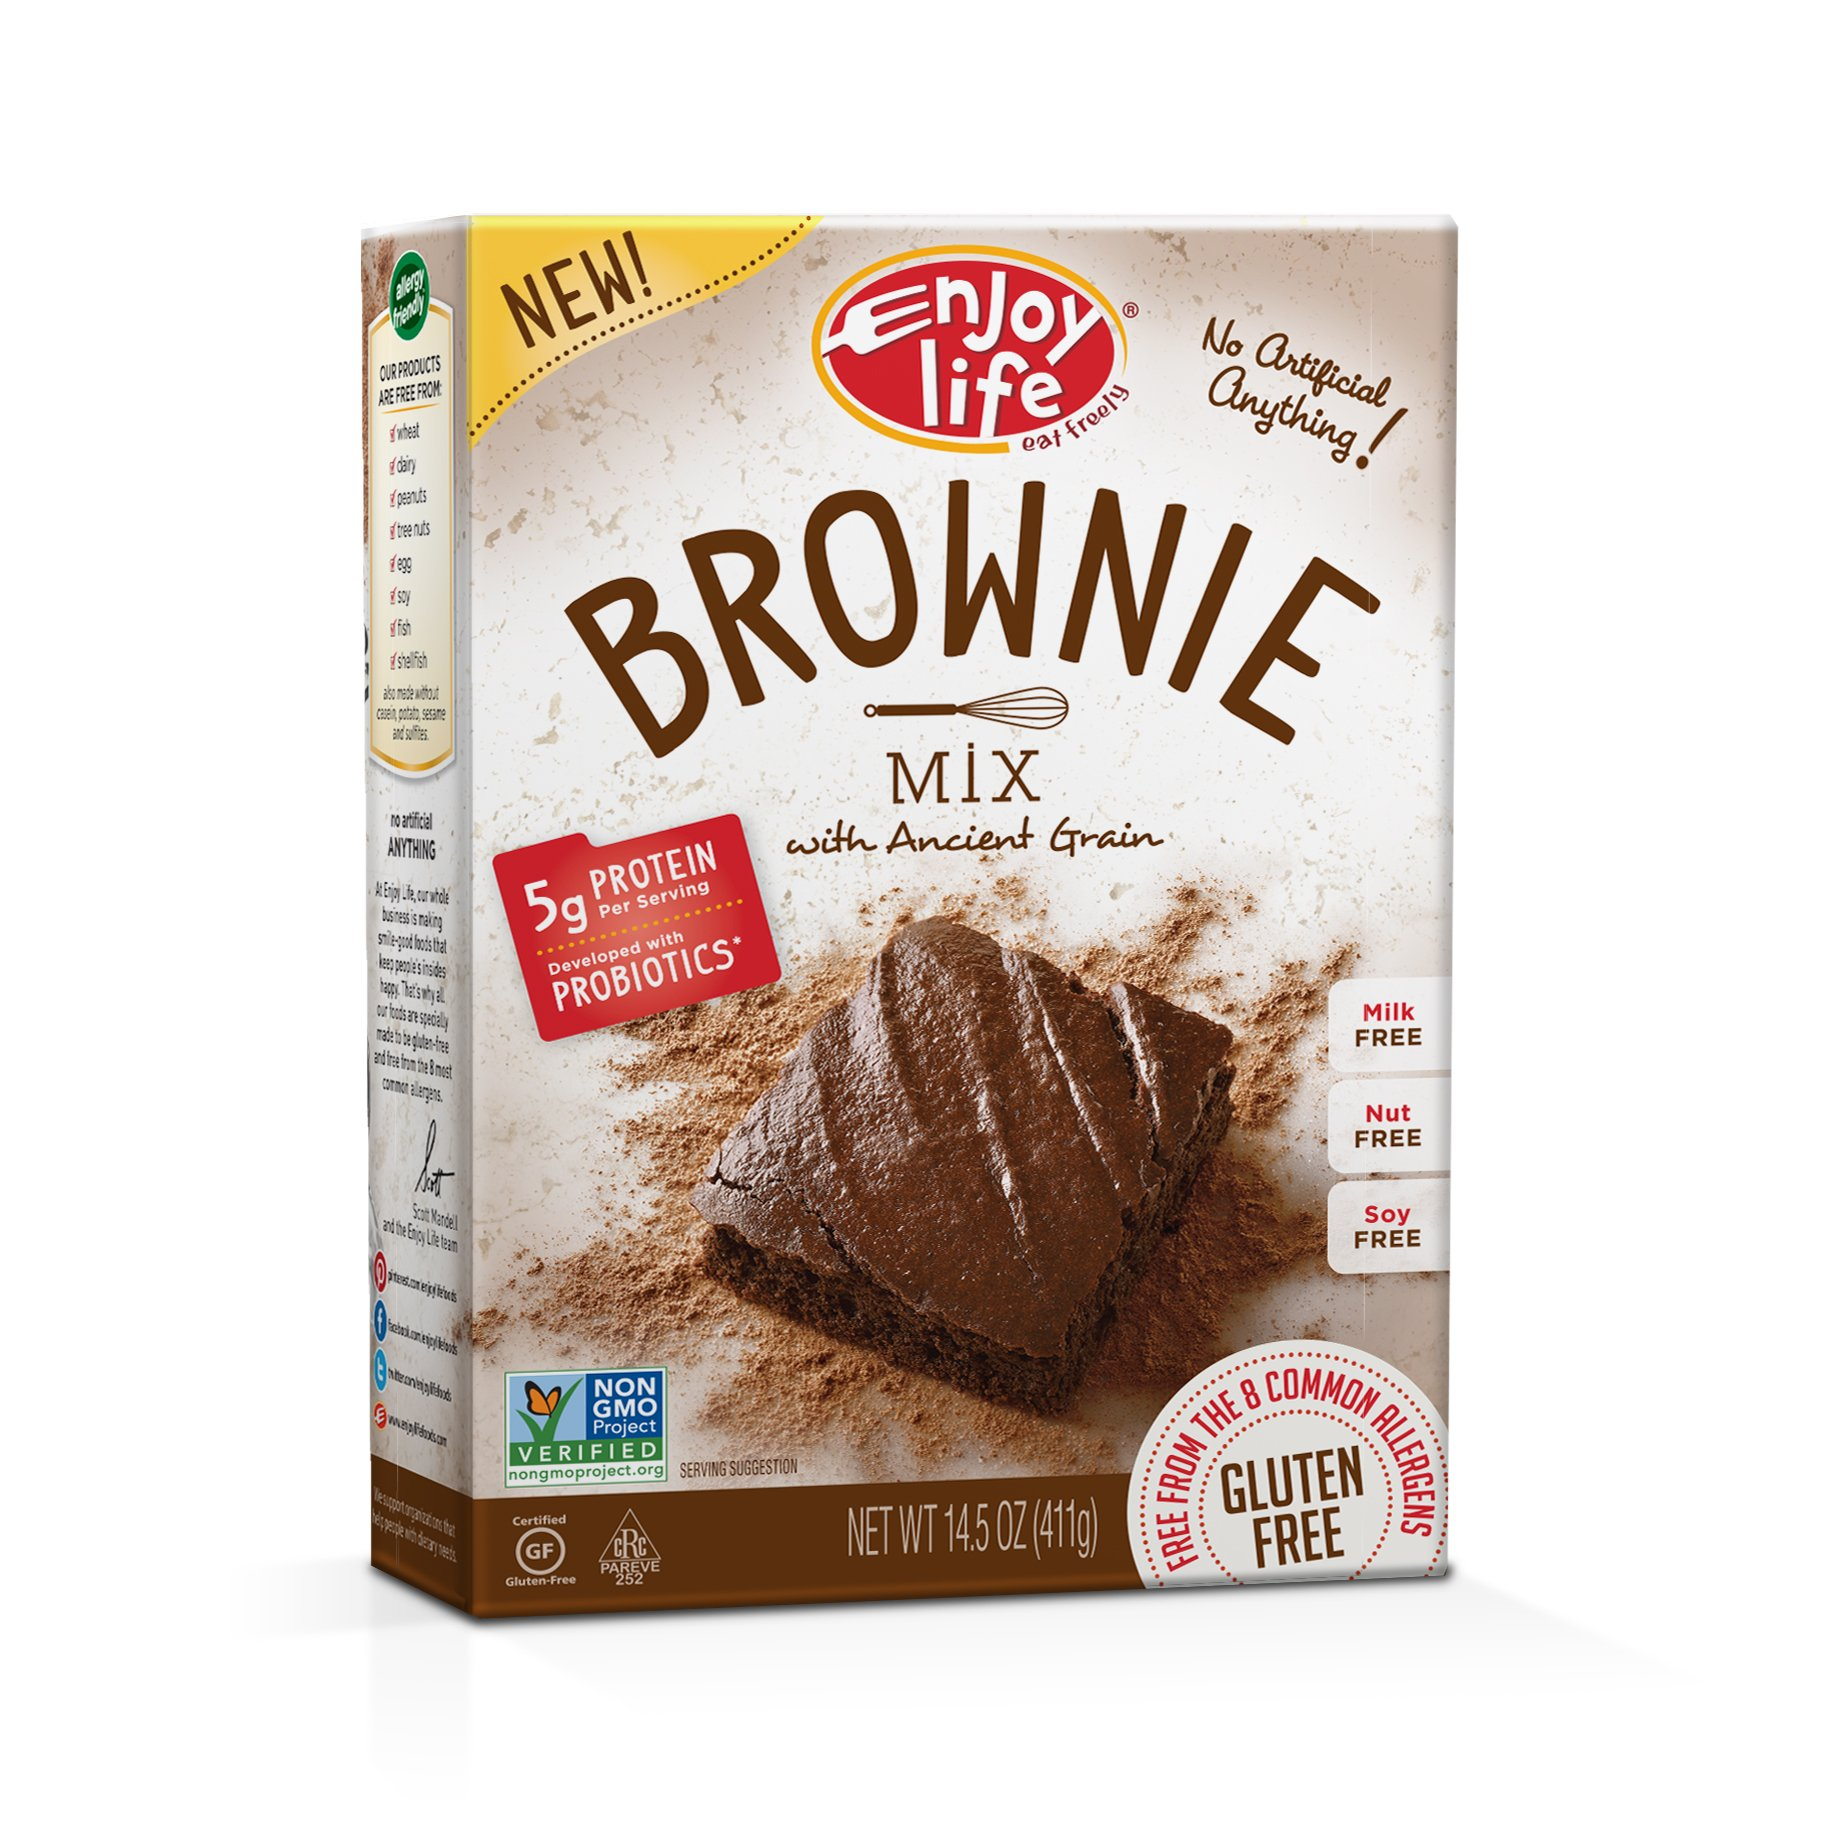 Enjoy Life Gluten Free Life Brownie Mix with Ancient Grains, Gluten, Dairy, Nut & Soy Free and Vegan, 14.5 Ounce